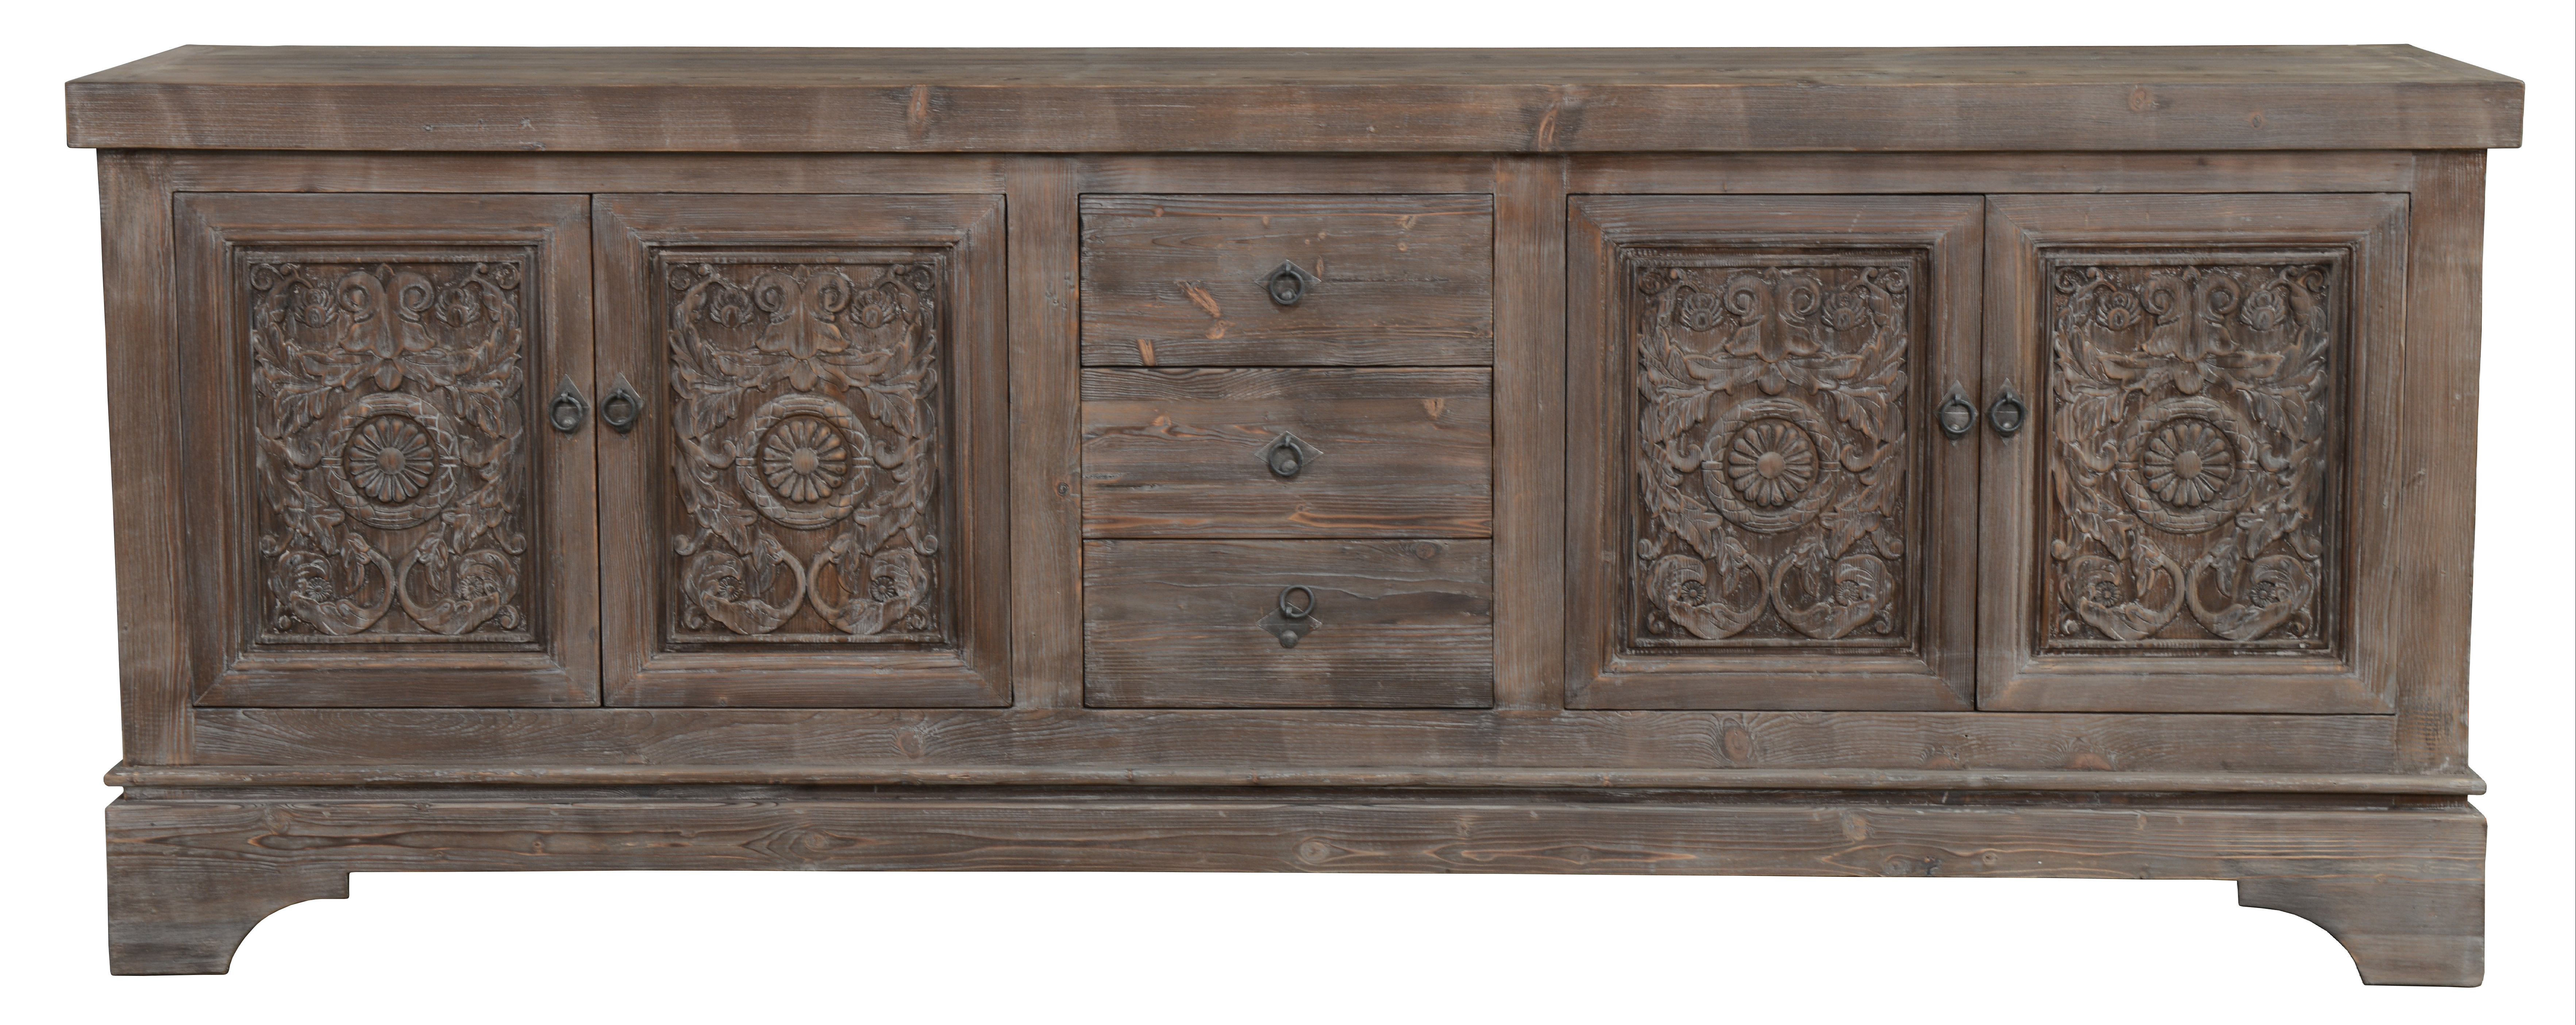 Farmhouse & Rustic Sideboards & Buffets | Birch Lane In Ilyan Traditional Wood Sideboards (View 13 of 20)